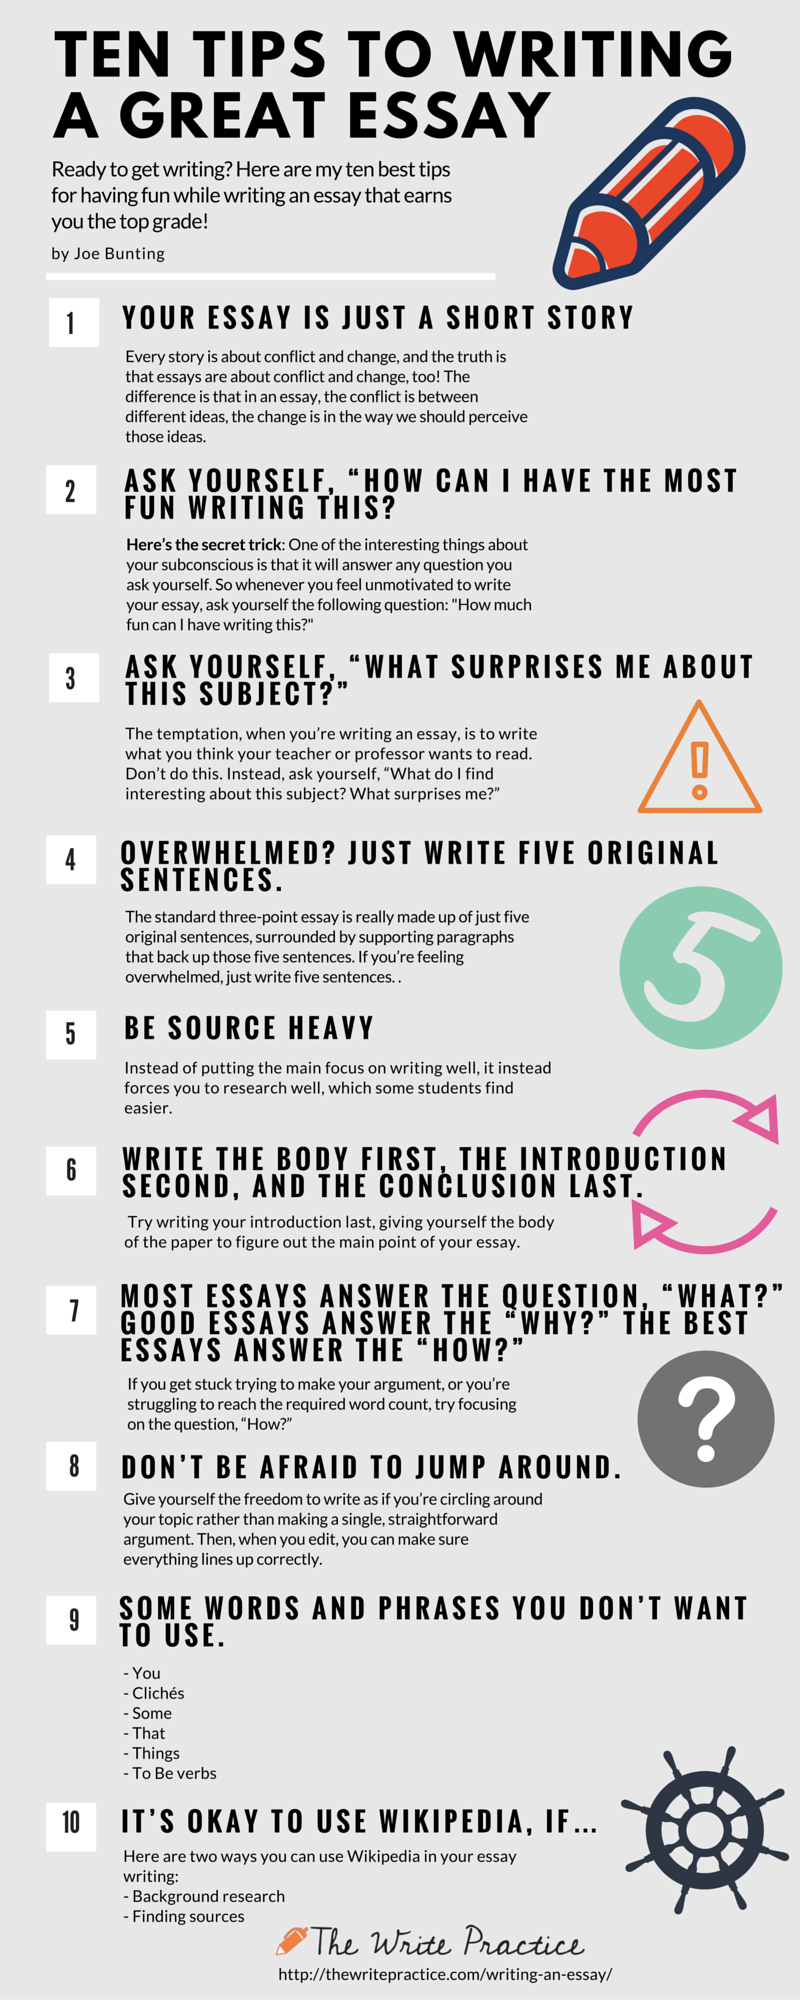 002 How To Start Writing An Essay Example Tips For Awful Write Argumentative Step By Pdf Opinion Introduction 3rd Grade Full